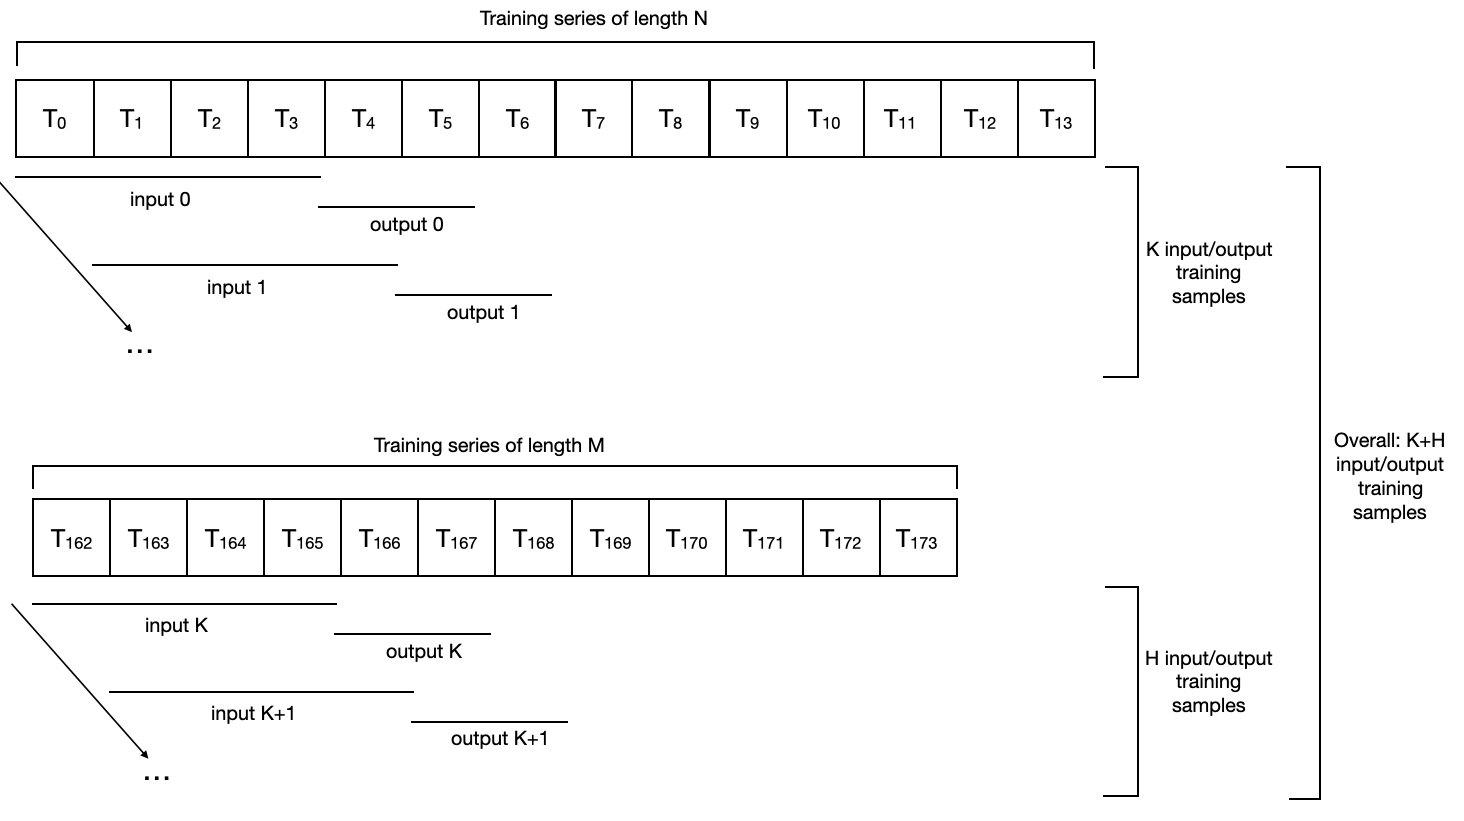 The slicing of two target time series to produce some input/output training samples, in the case of a SequentialDataset (no covariate in this example).